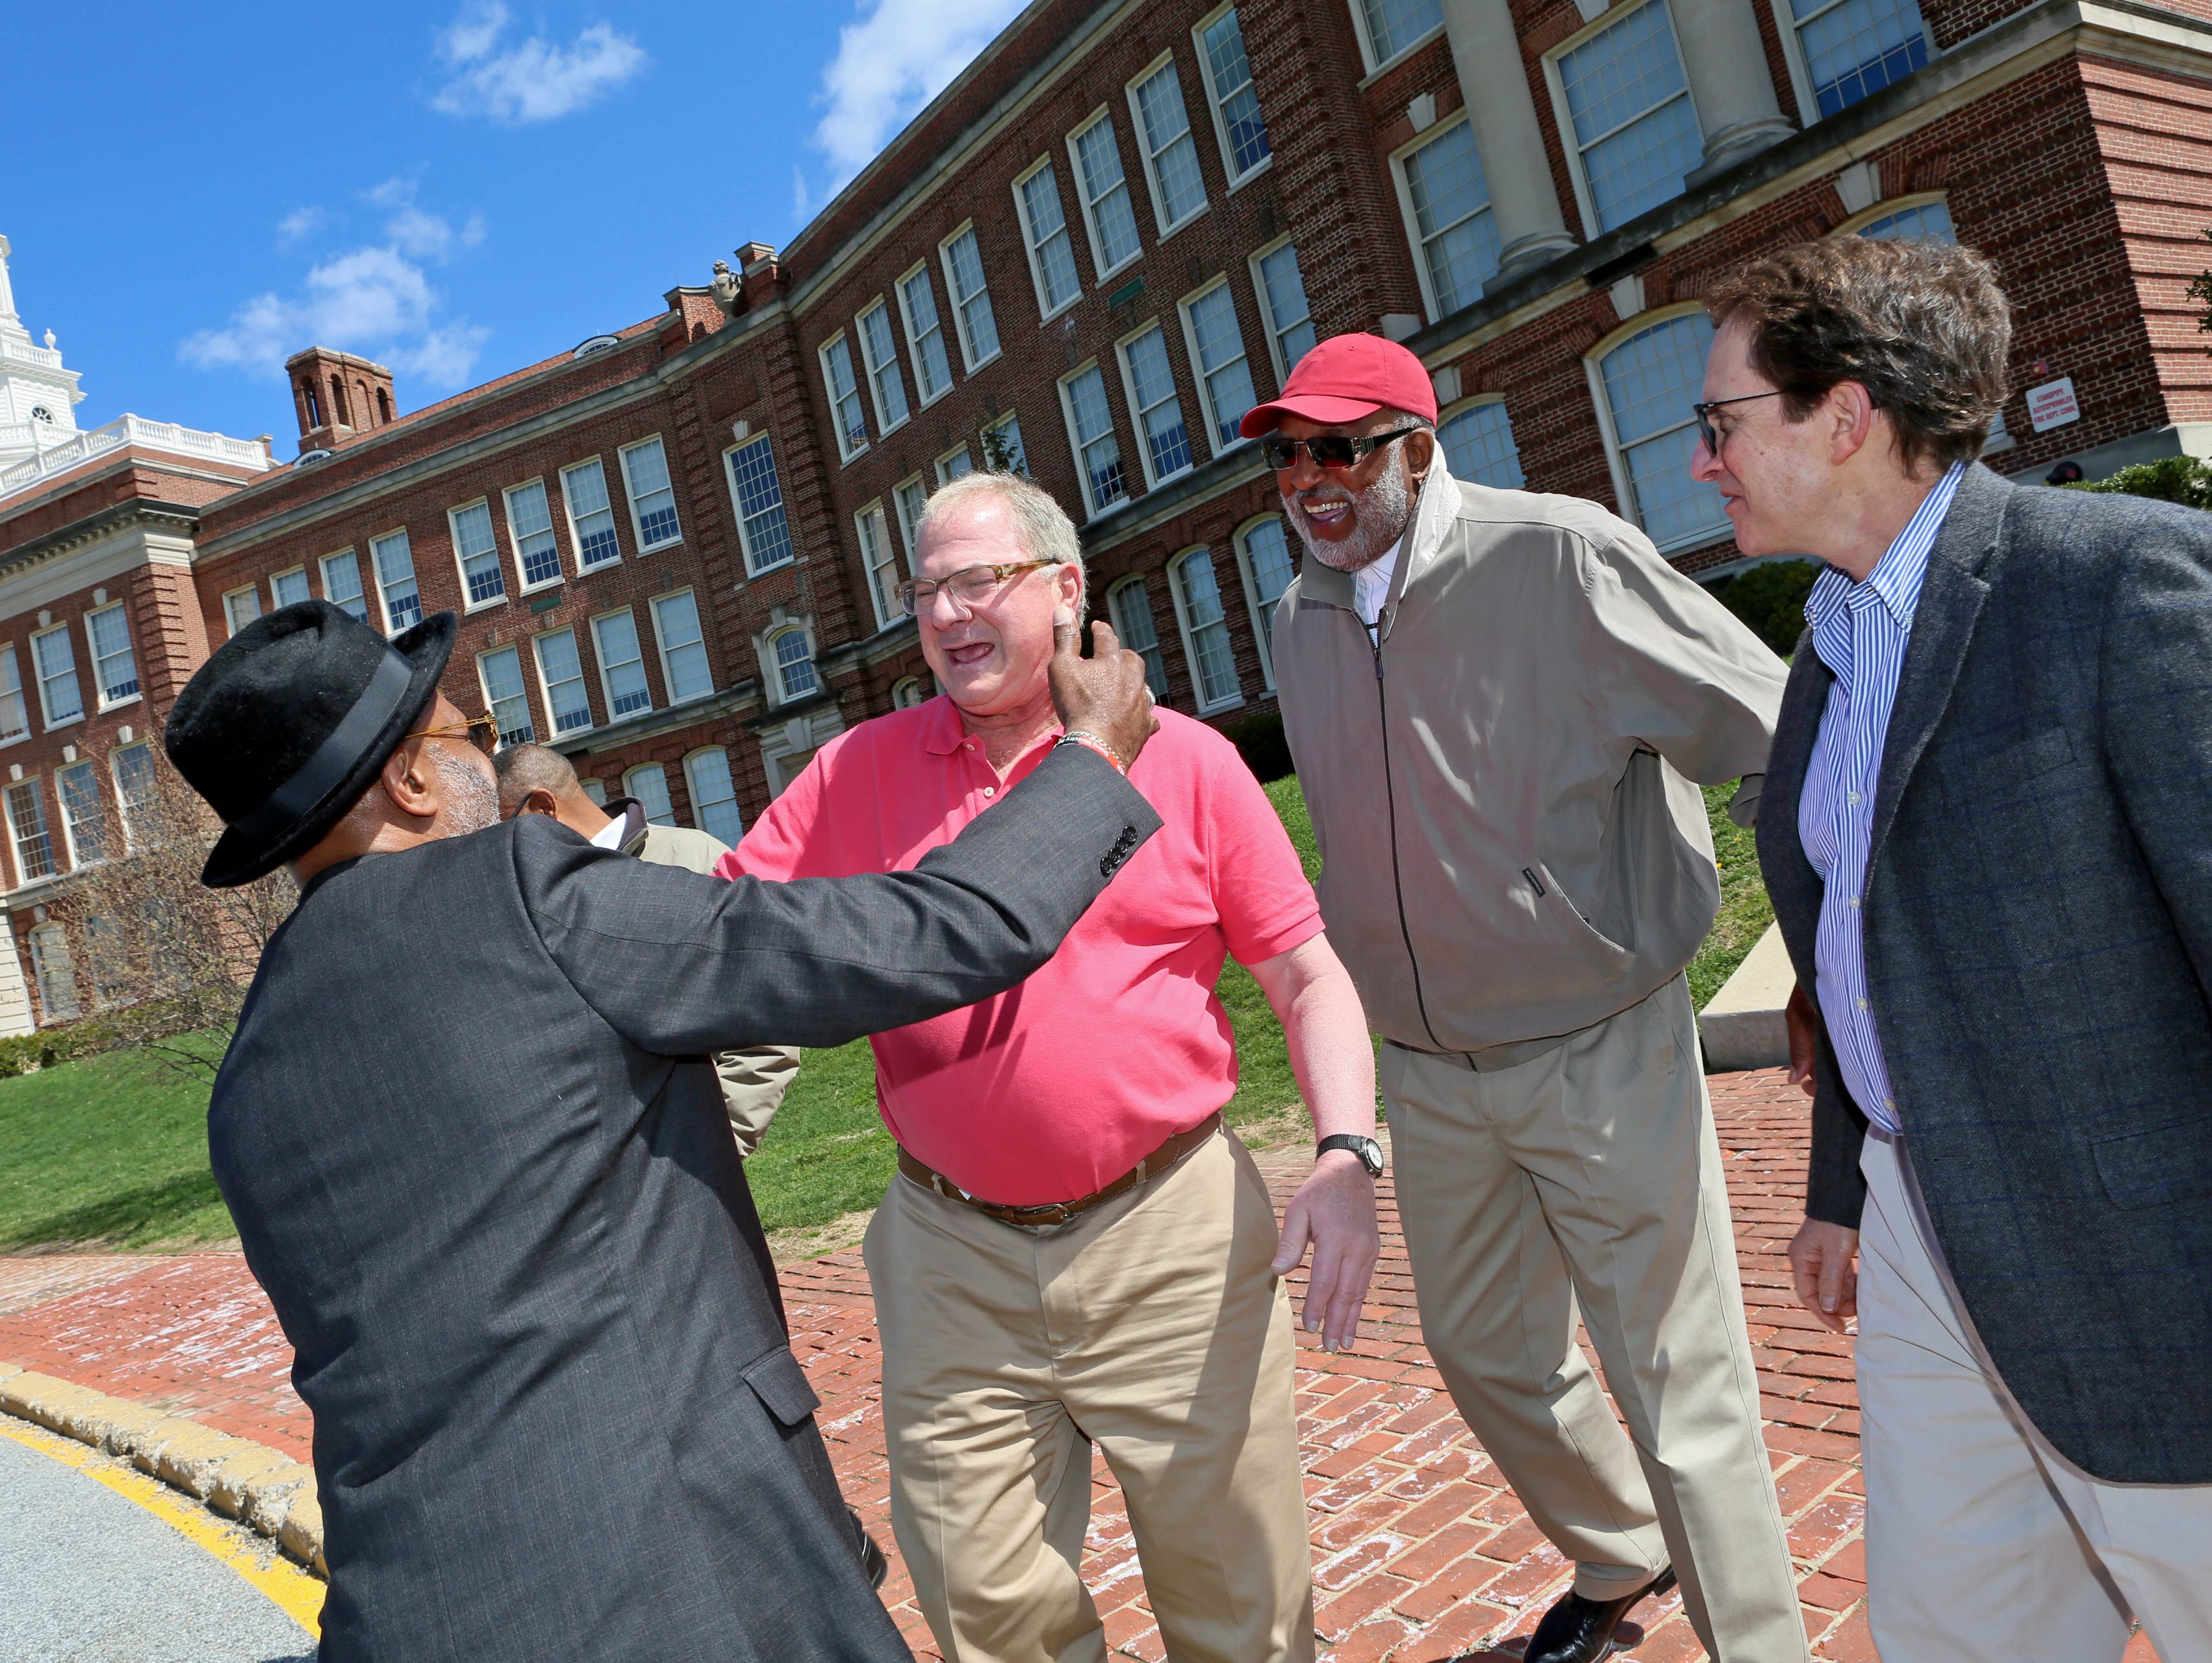 Former 1968 state championship basketball teammates Bobbie Dillard, Dennis Spivack, Ron Smith and Andy Berger, reunited in front of the old P.S. du Pont High School where they all once played.